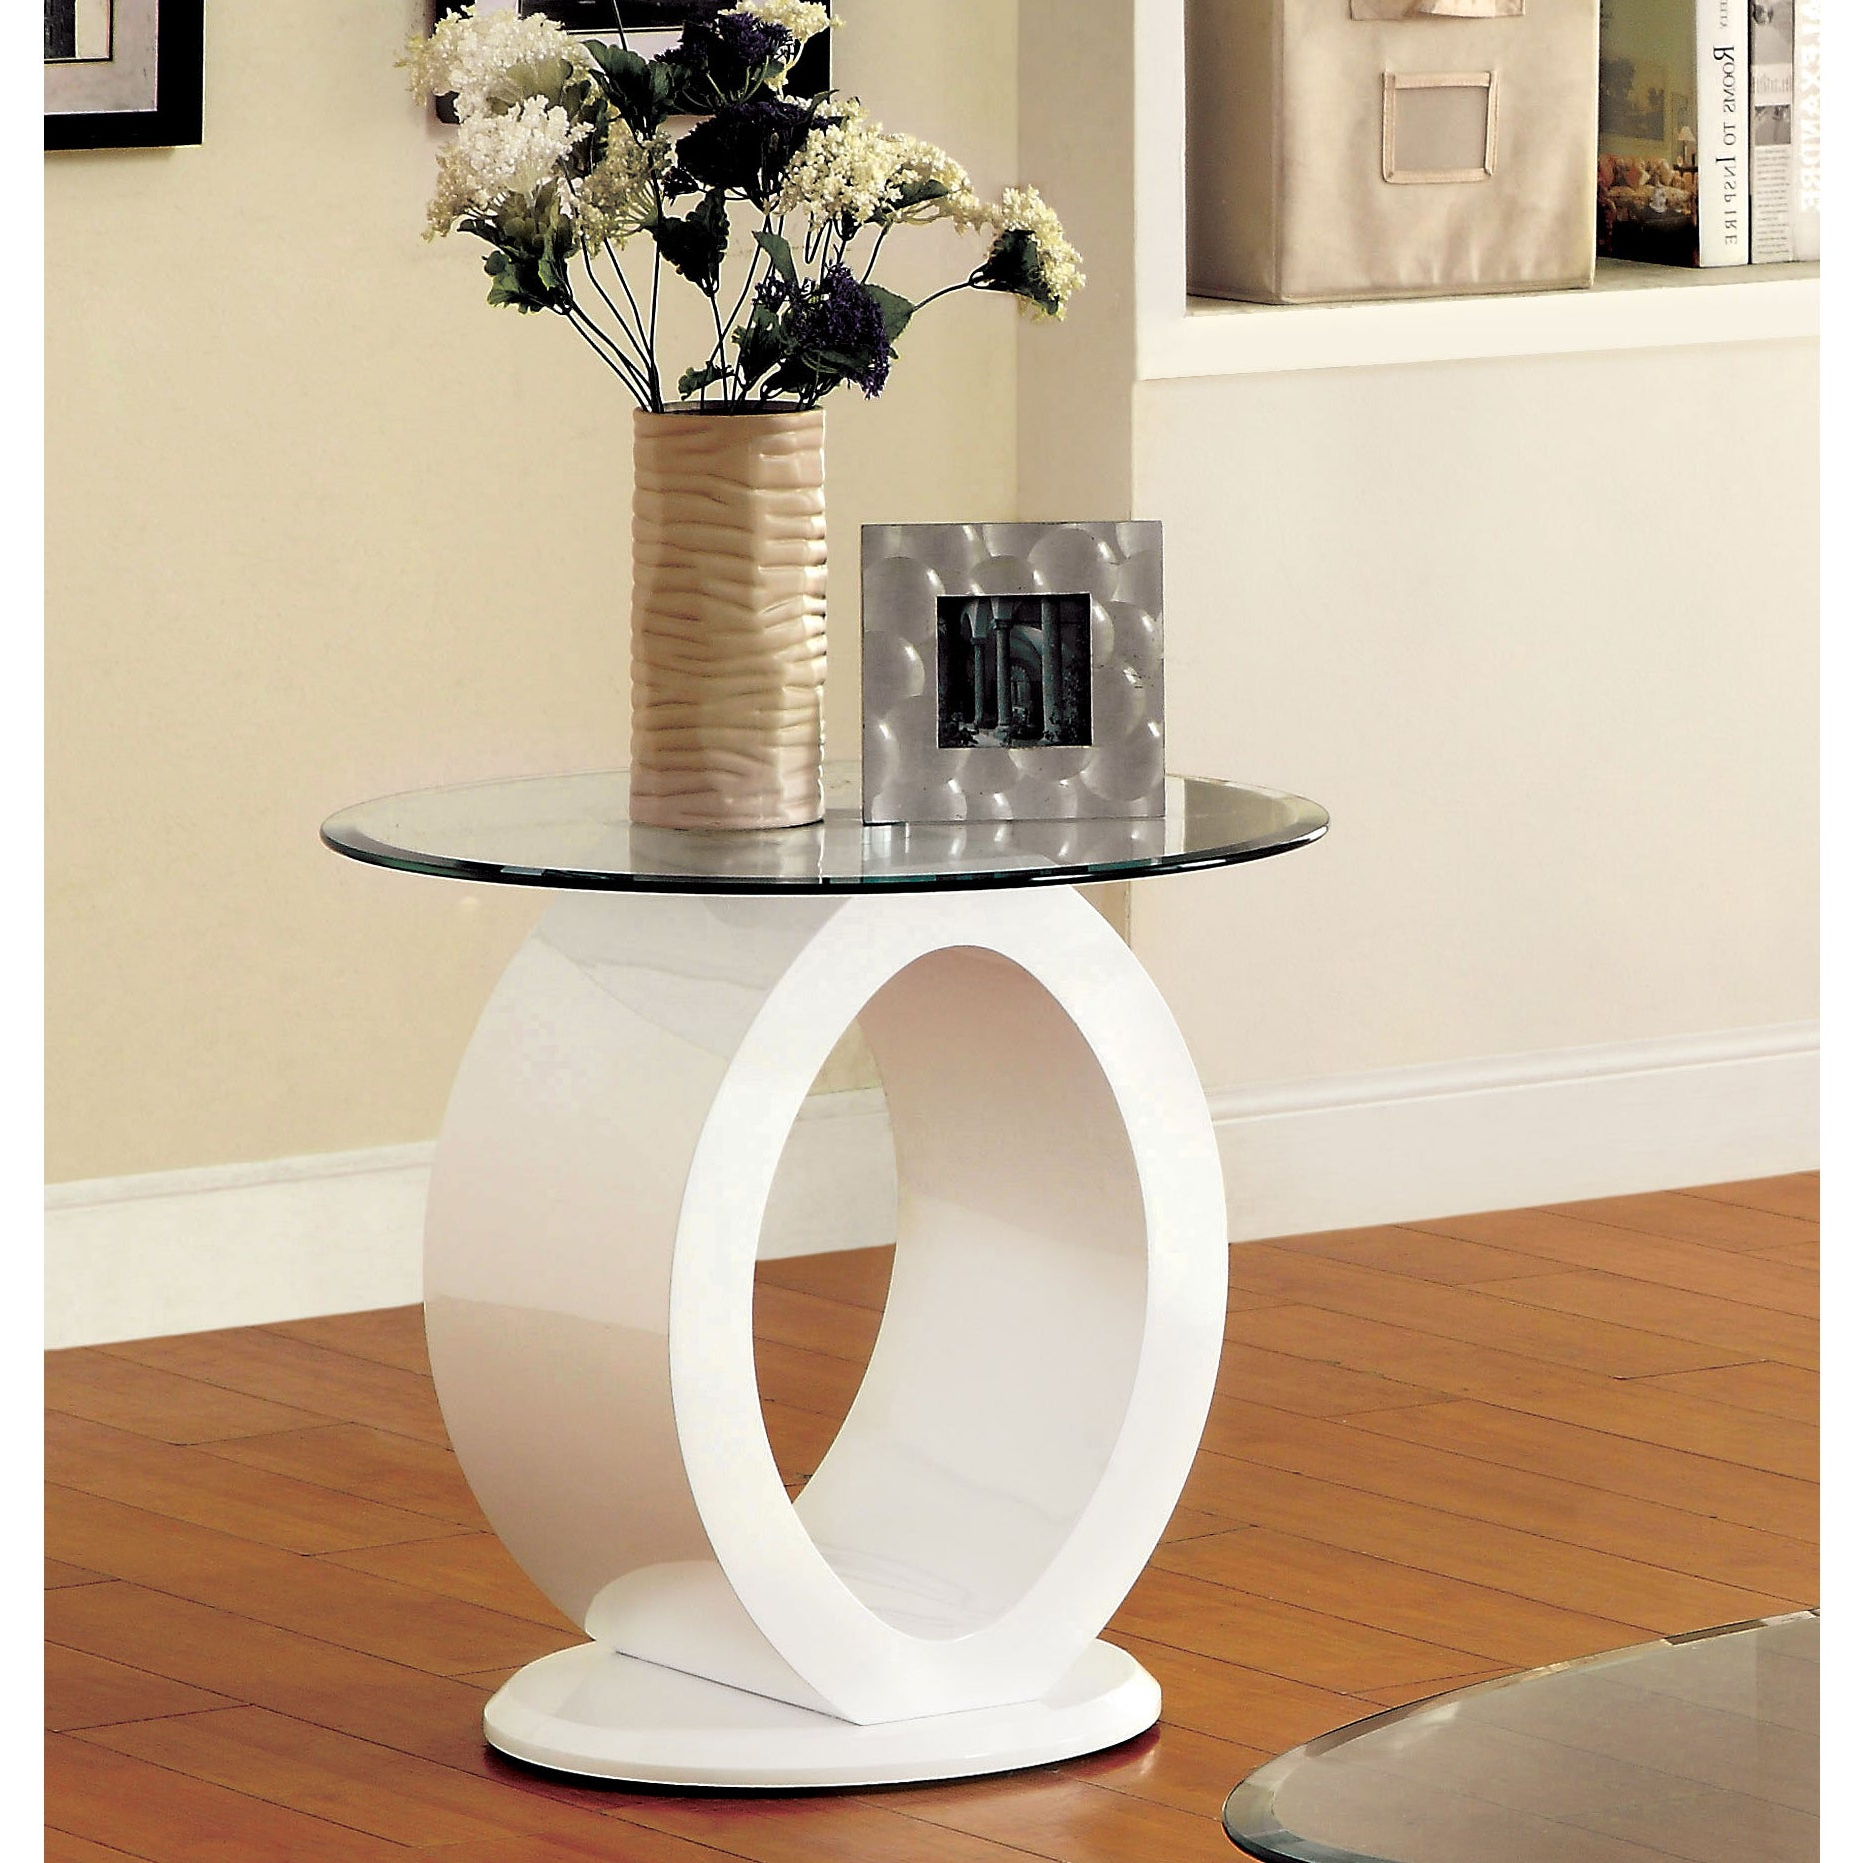 Strick & Bolton Totte O Shaped End Table Regarding Well Known Strick & Bolton Totte O Shaped Coffee Tables (View 7 of 20)